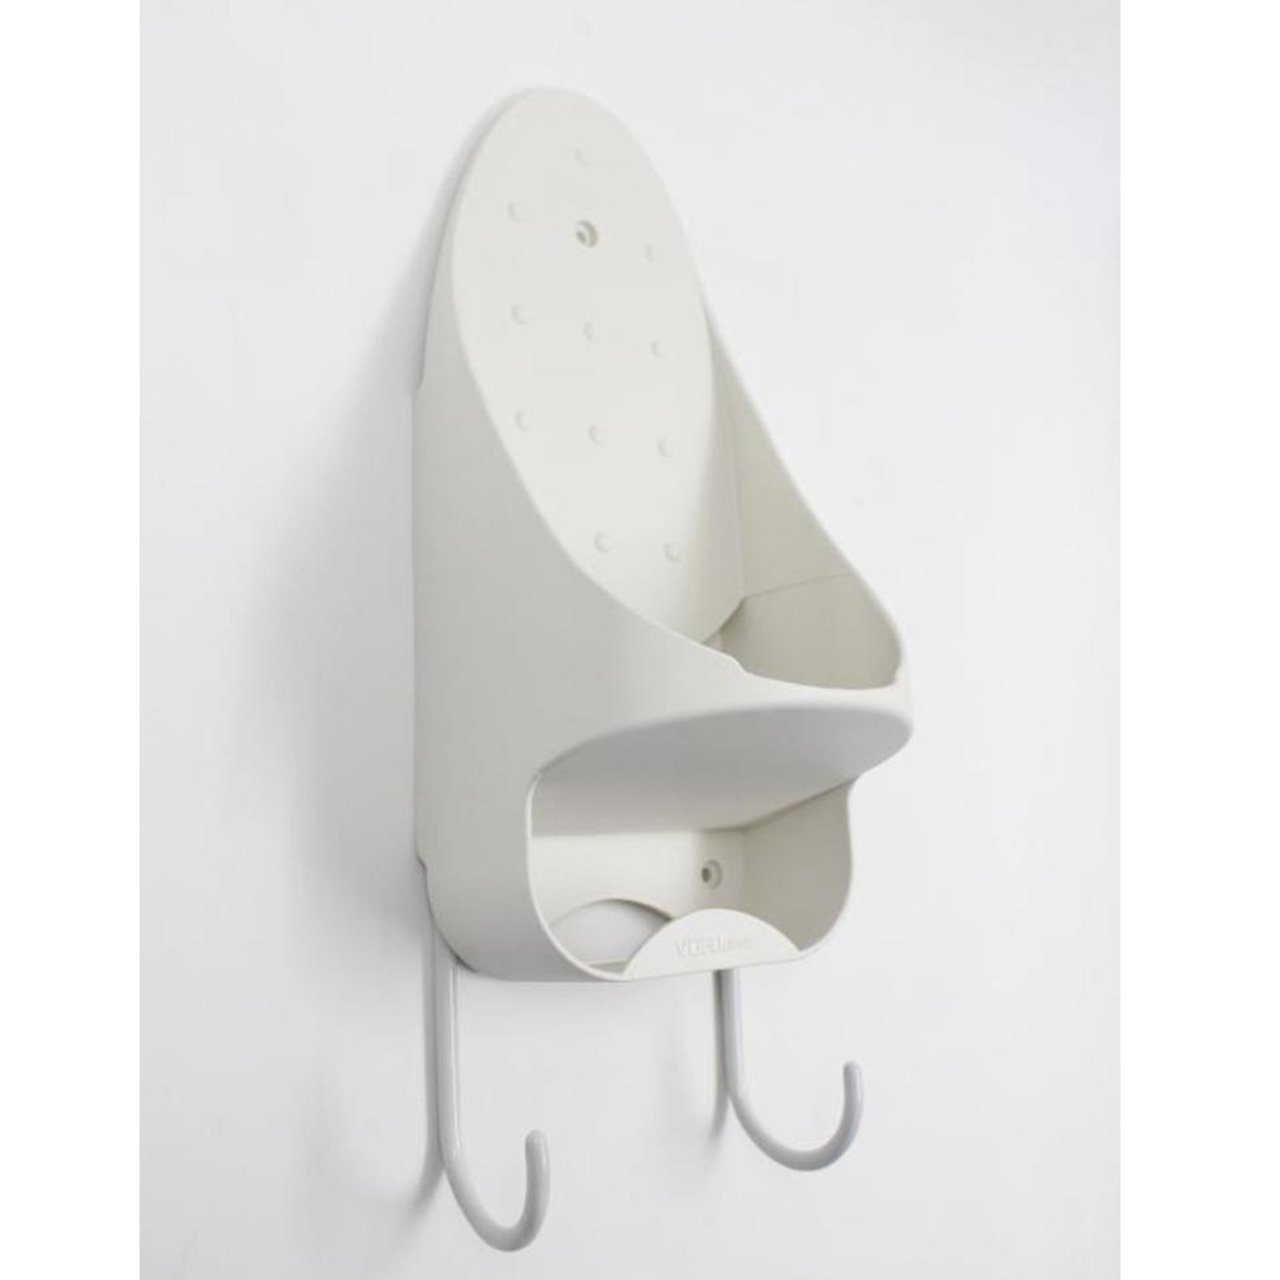 Fun life Holds iron and ironing board cord hanger heat resistant wall mounted holder hooks-White